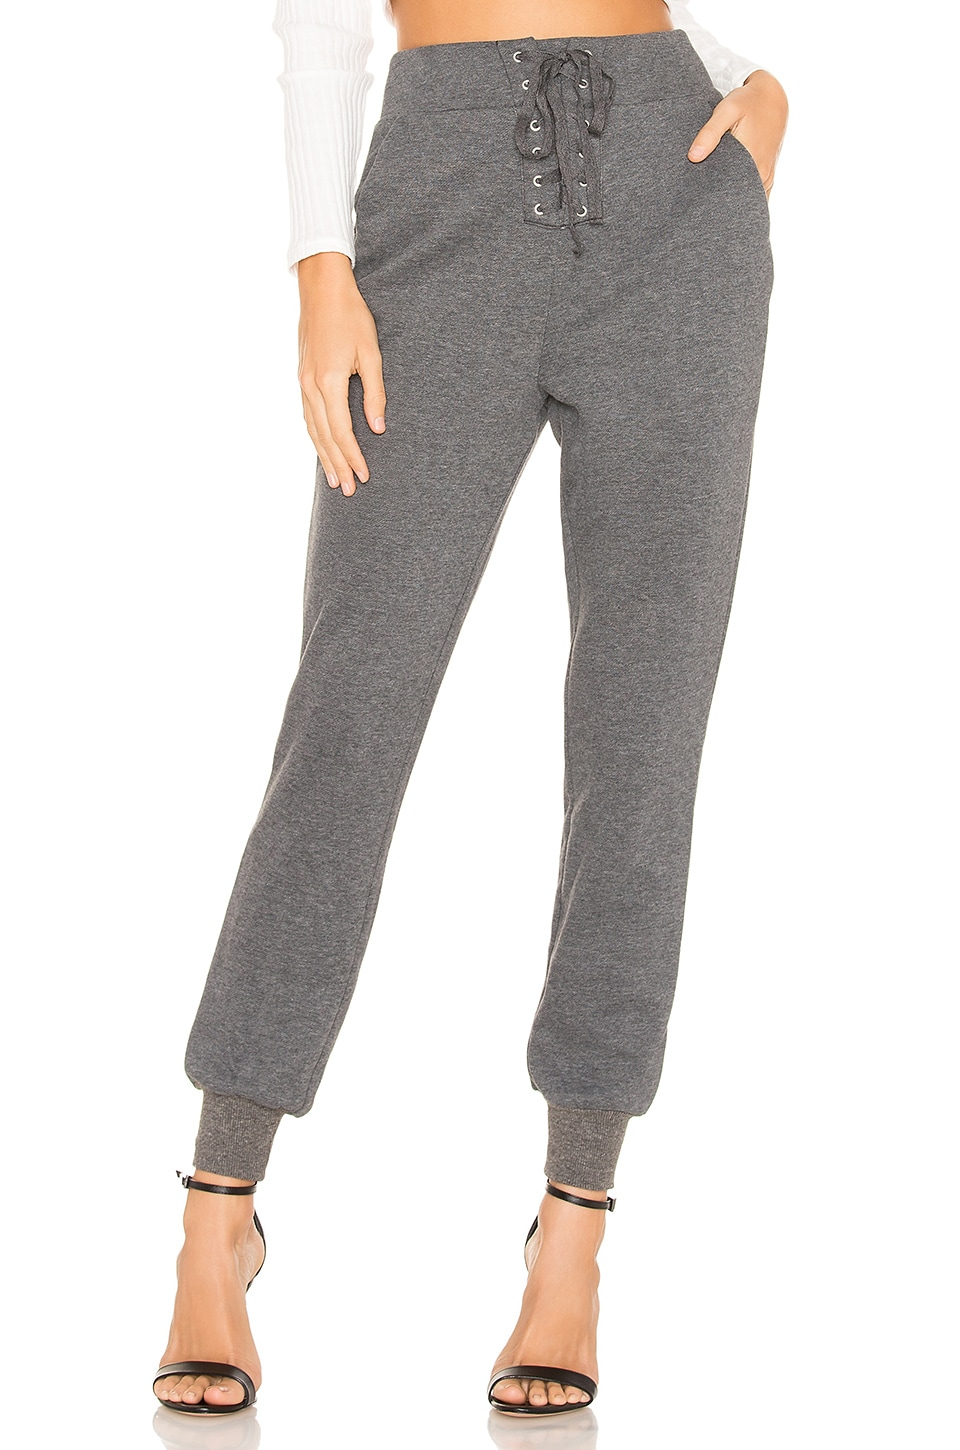 Tularosa Jeremy Sweatpants in Charcoal